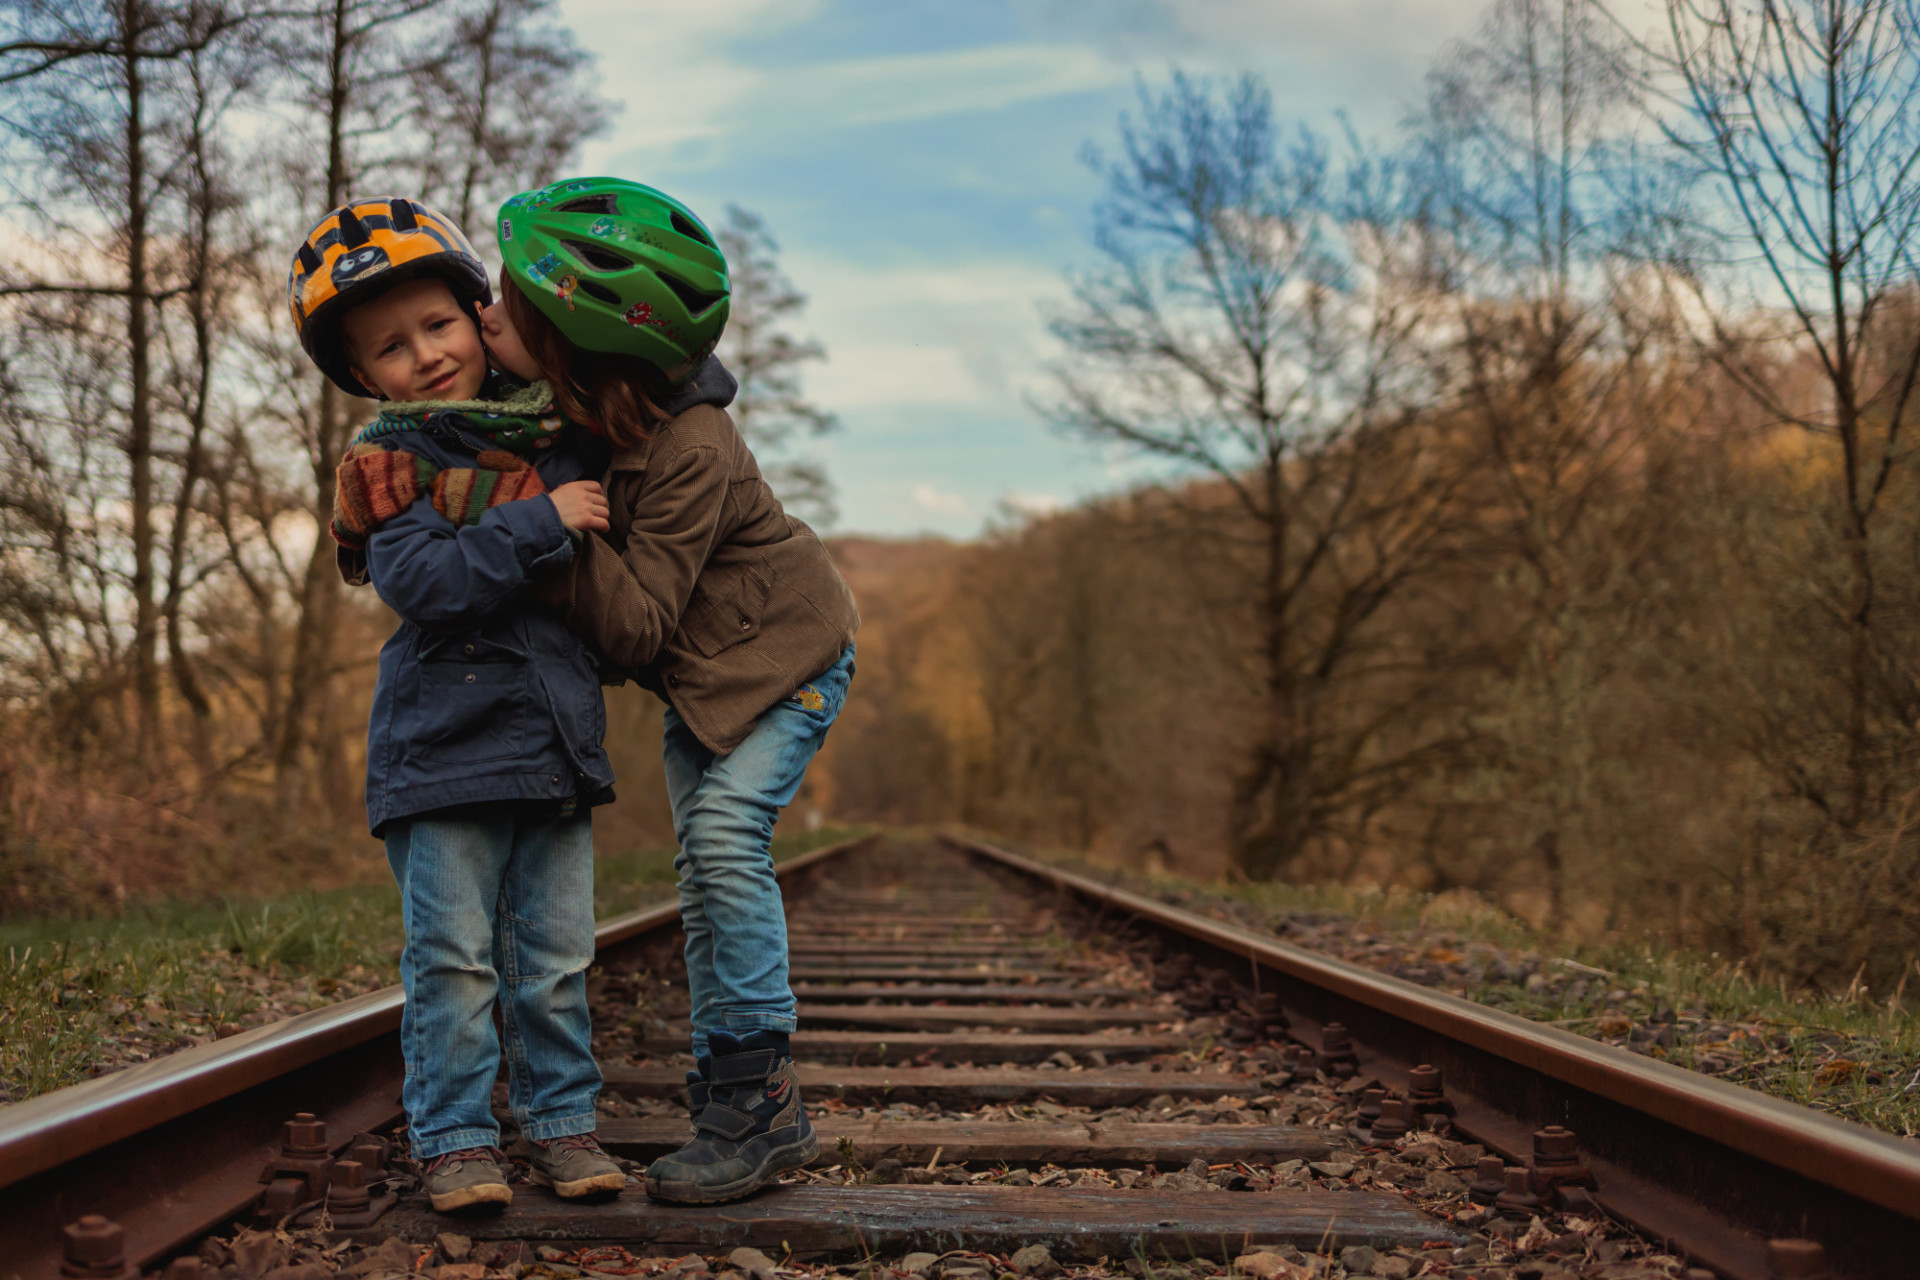 Two little brothers on an old disused railroad track